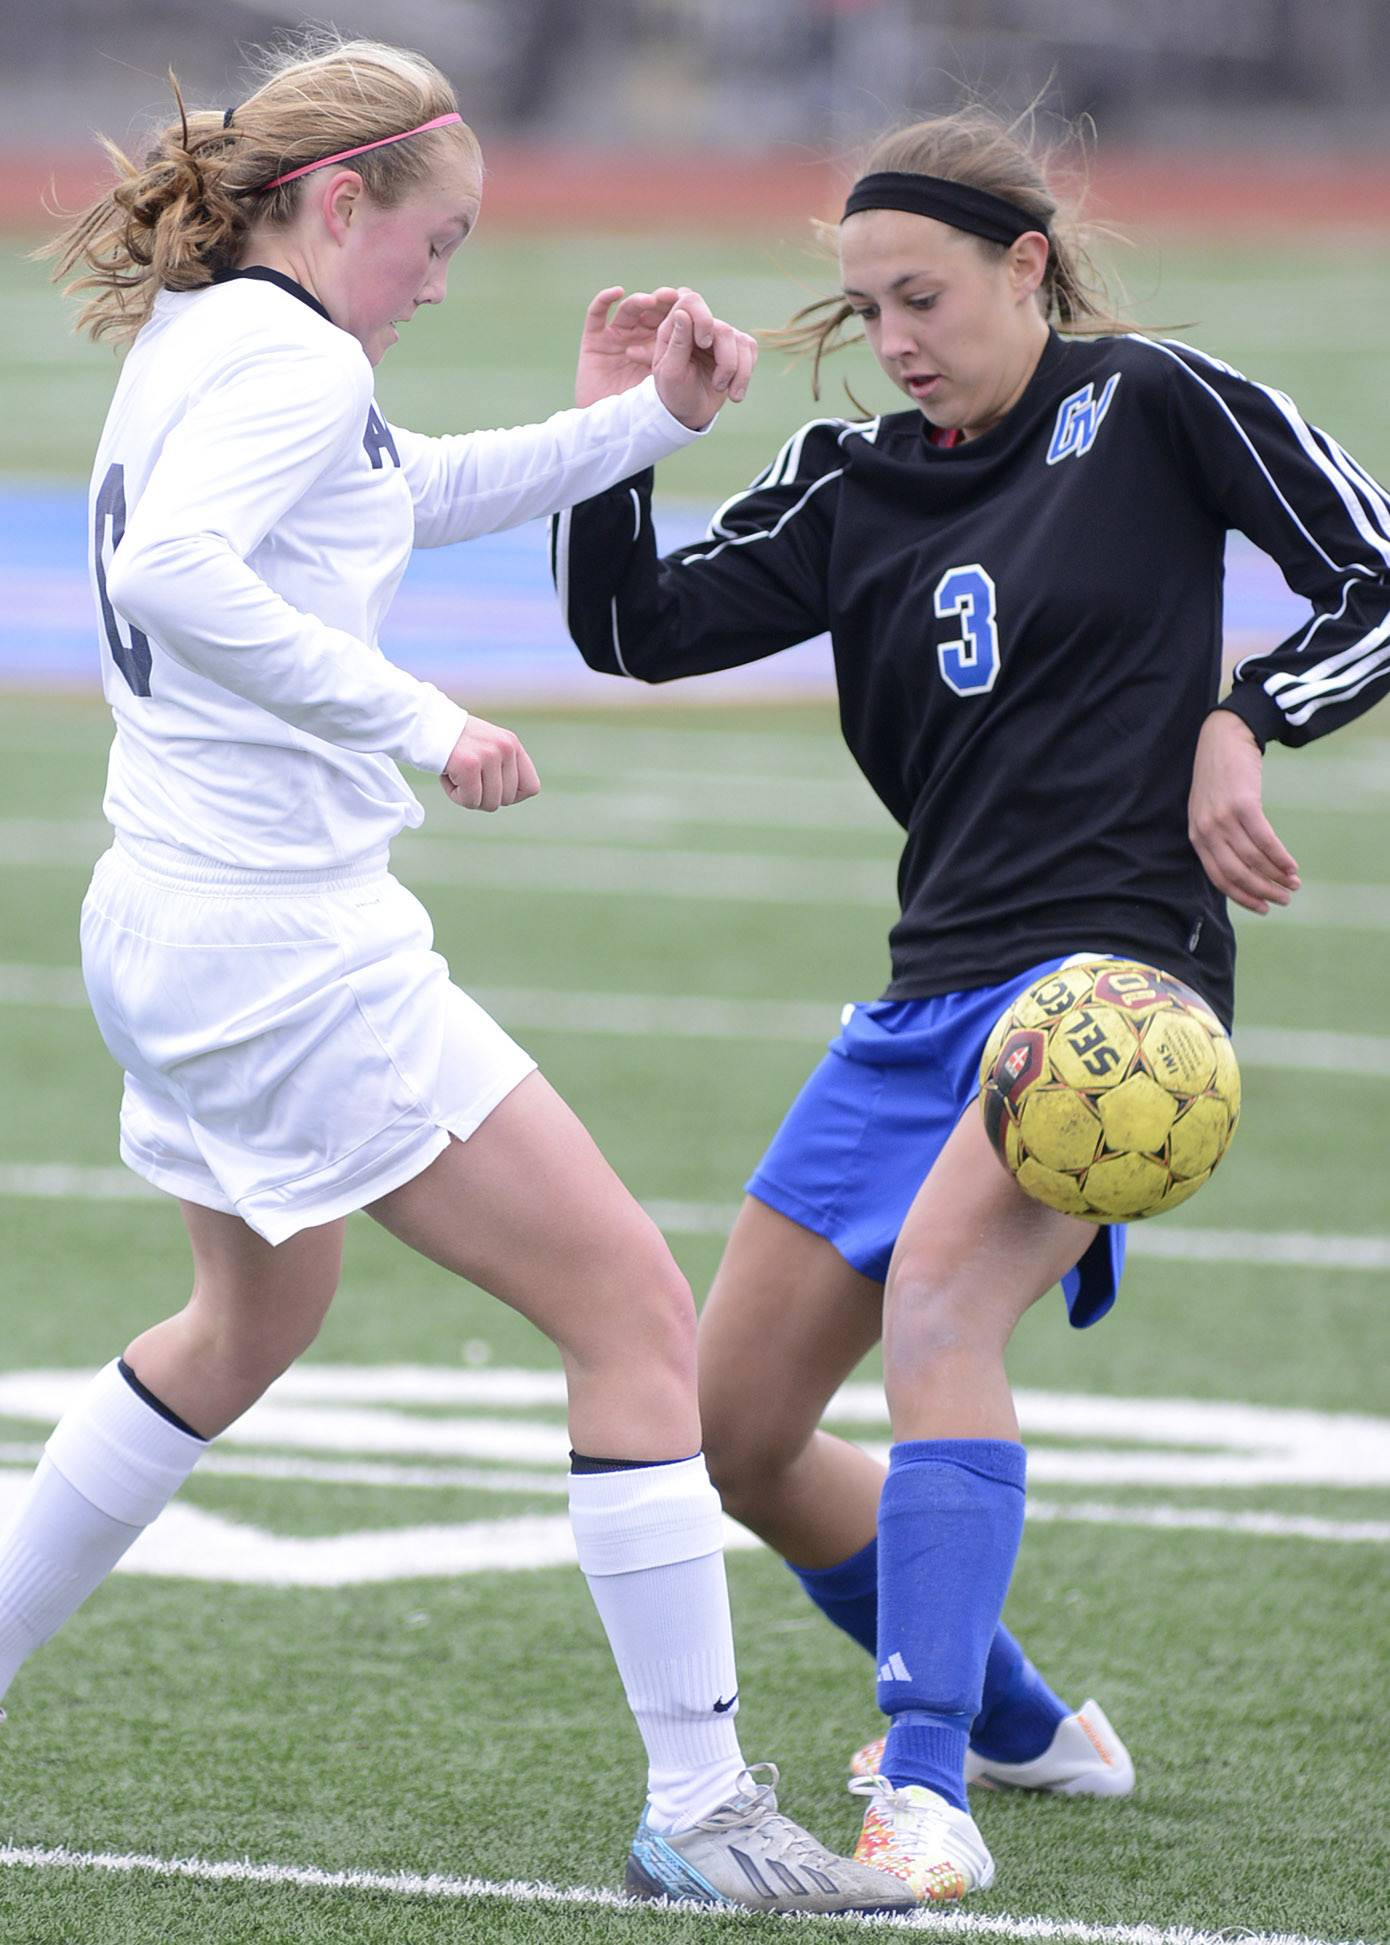 West Aurora's Taylor Truckenbrod, left, and Geneva's Megan Fitz fight for the ball in the first half in Aurora on Saturday, March 29.